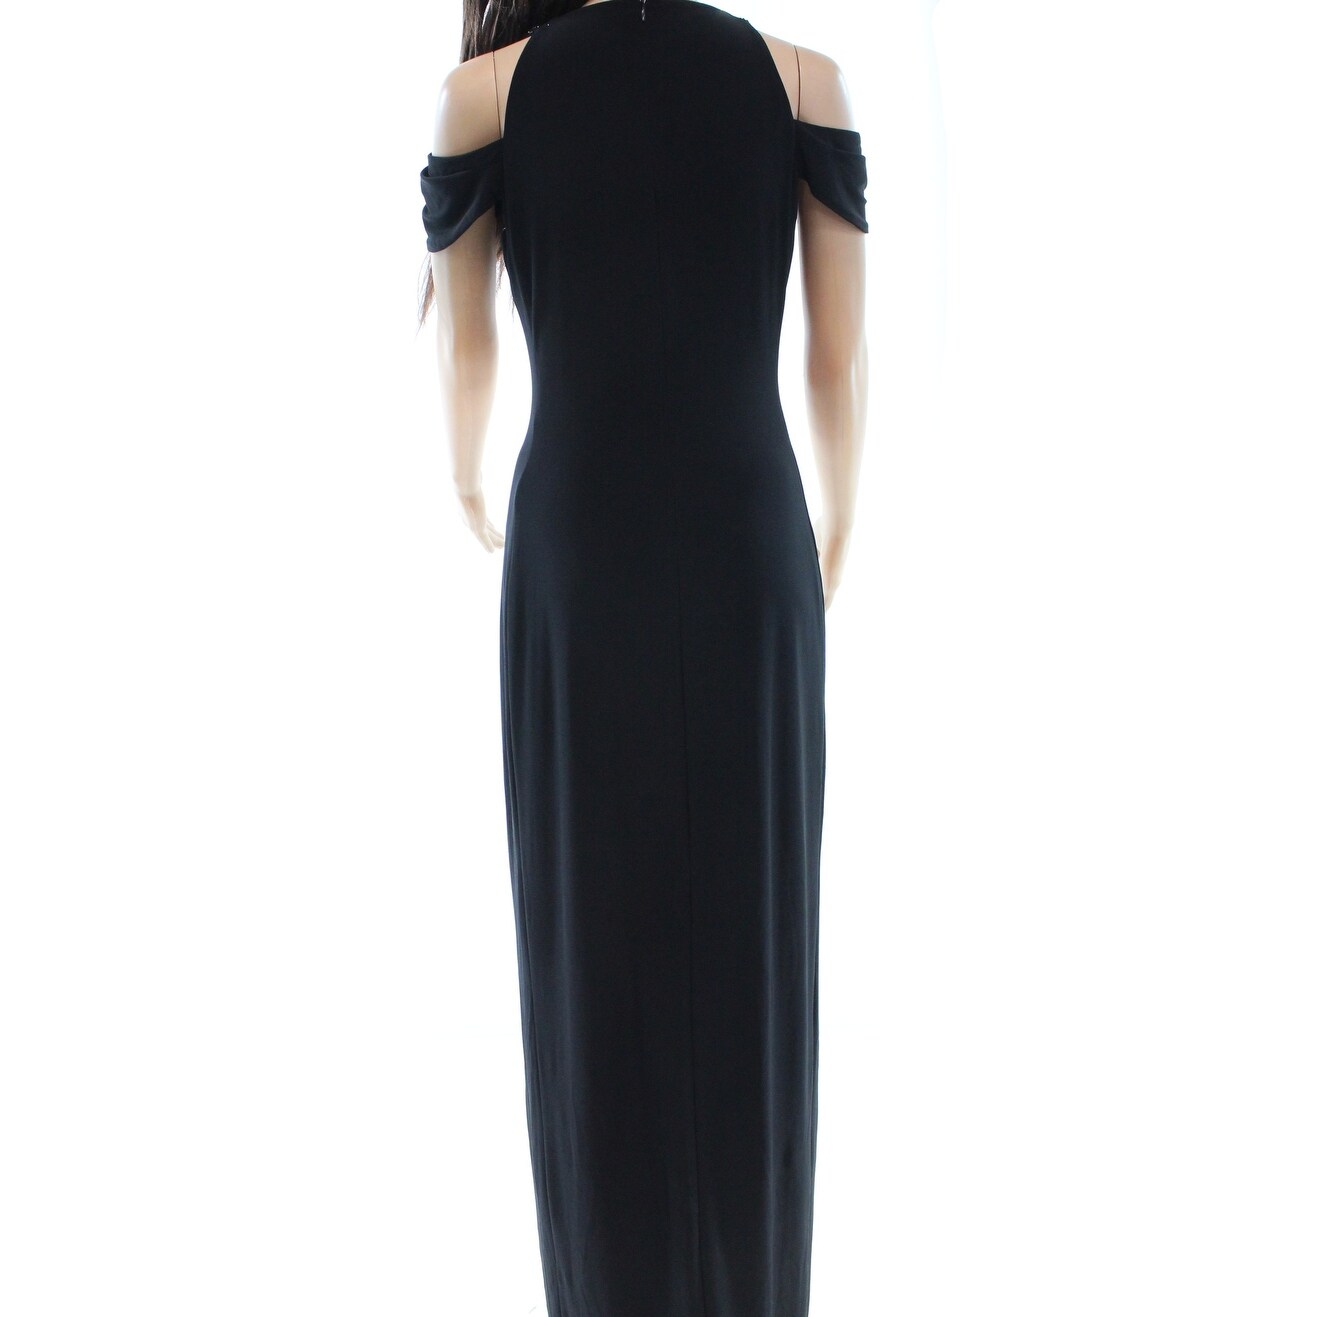 84f699ff8d Shop Lauren Ralph Lauren NEW Black Womens Size 14 Cold-Shoulder Maxi Dress  - Free Shipping On Orders Over  45 - Overstock - 18322815